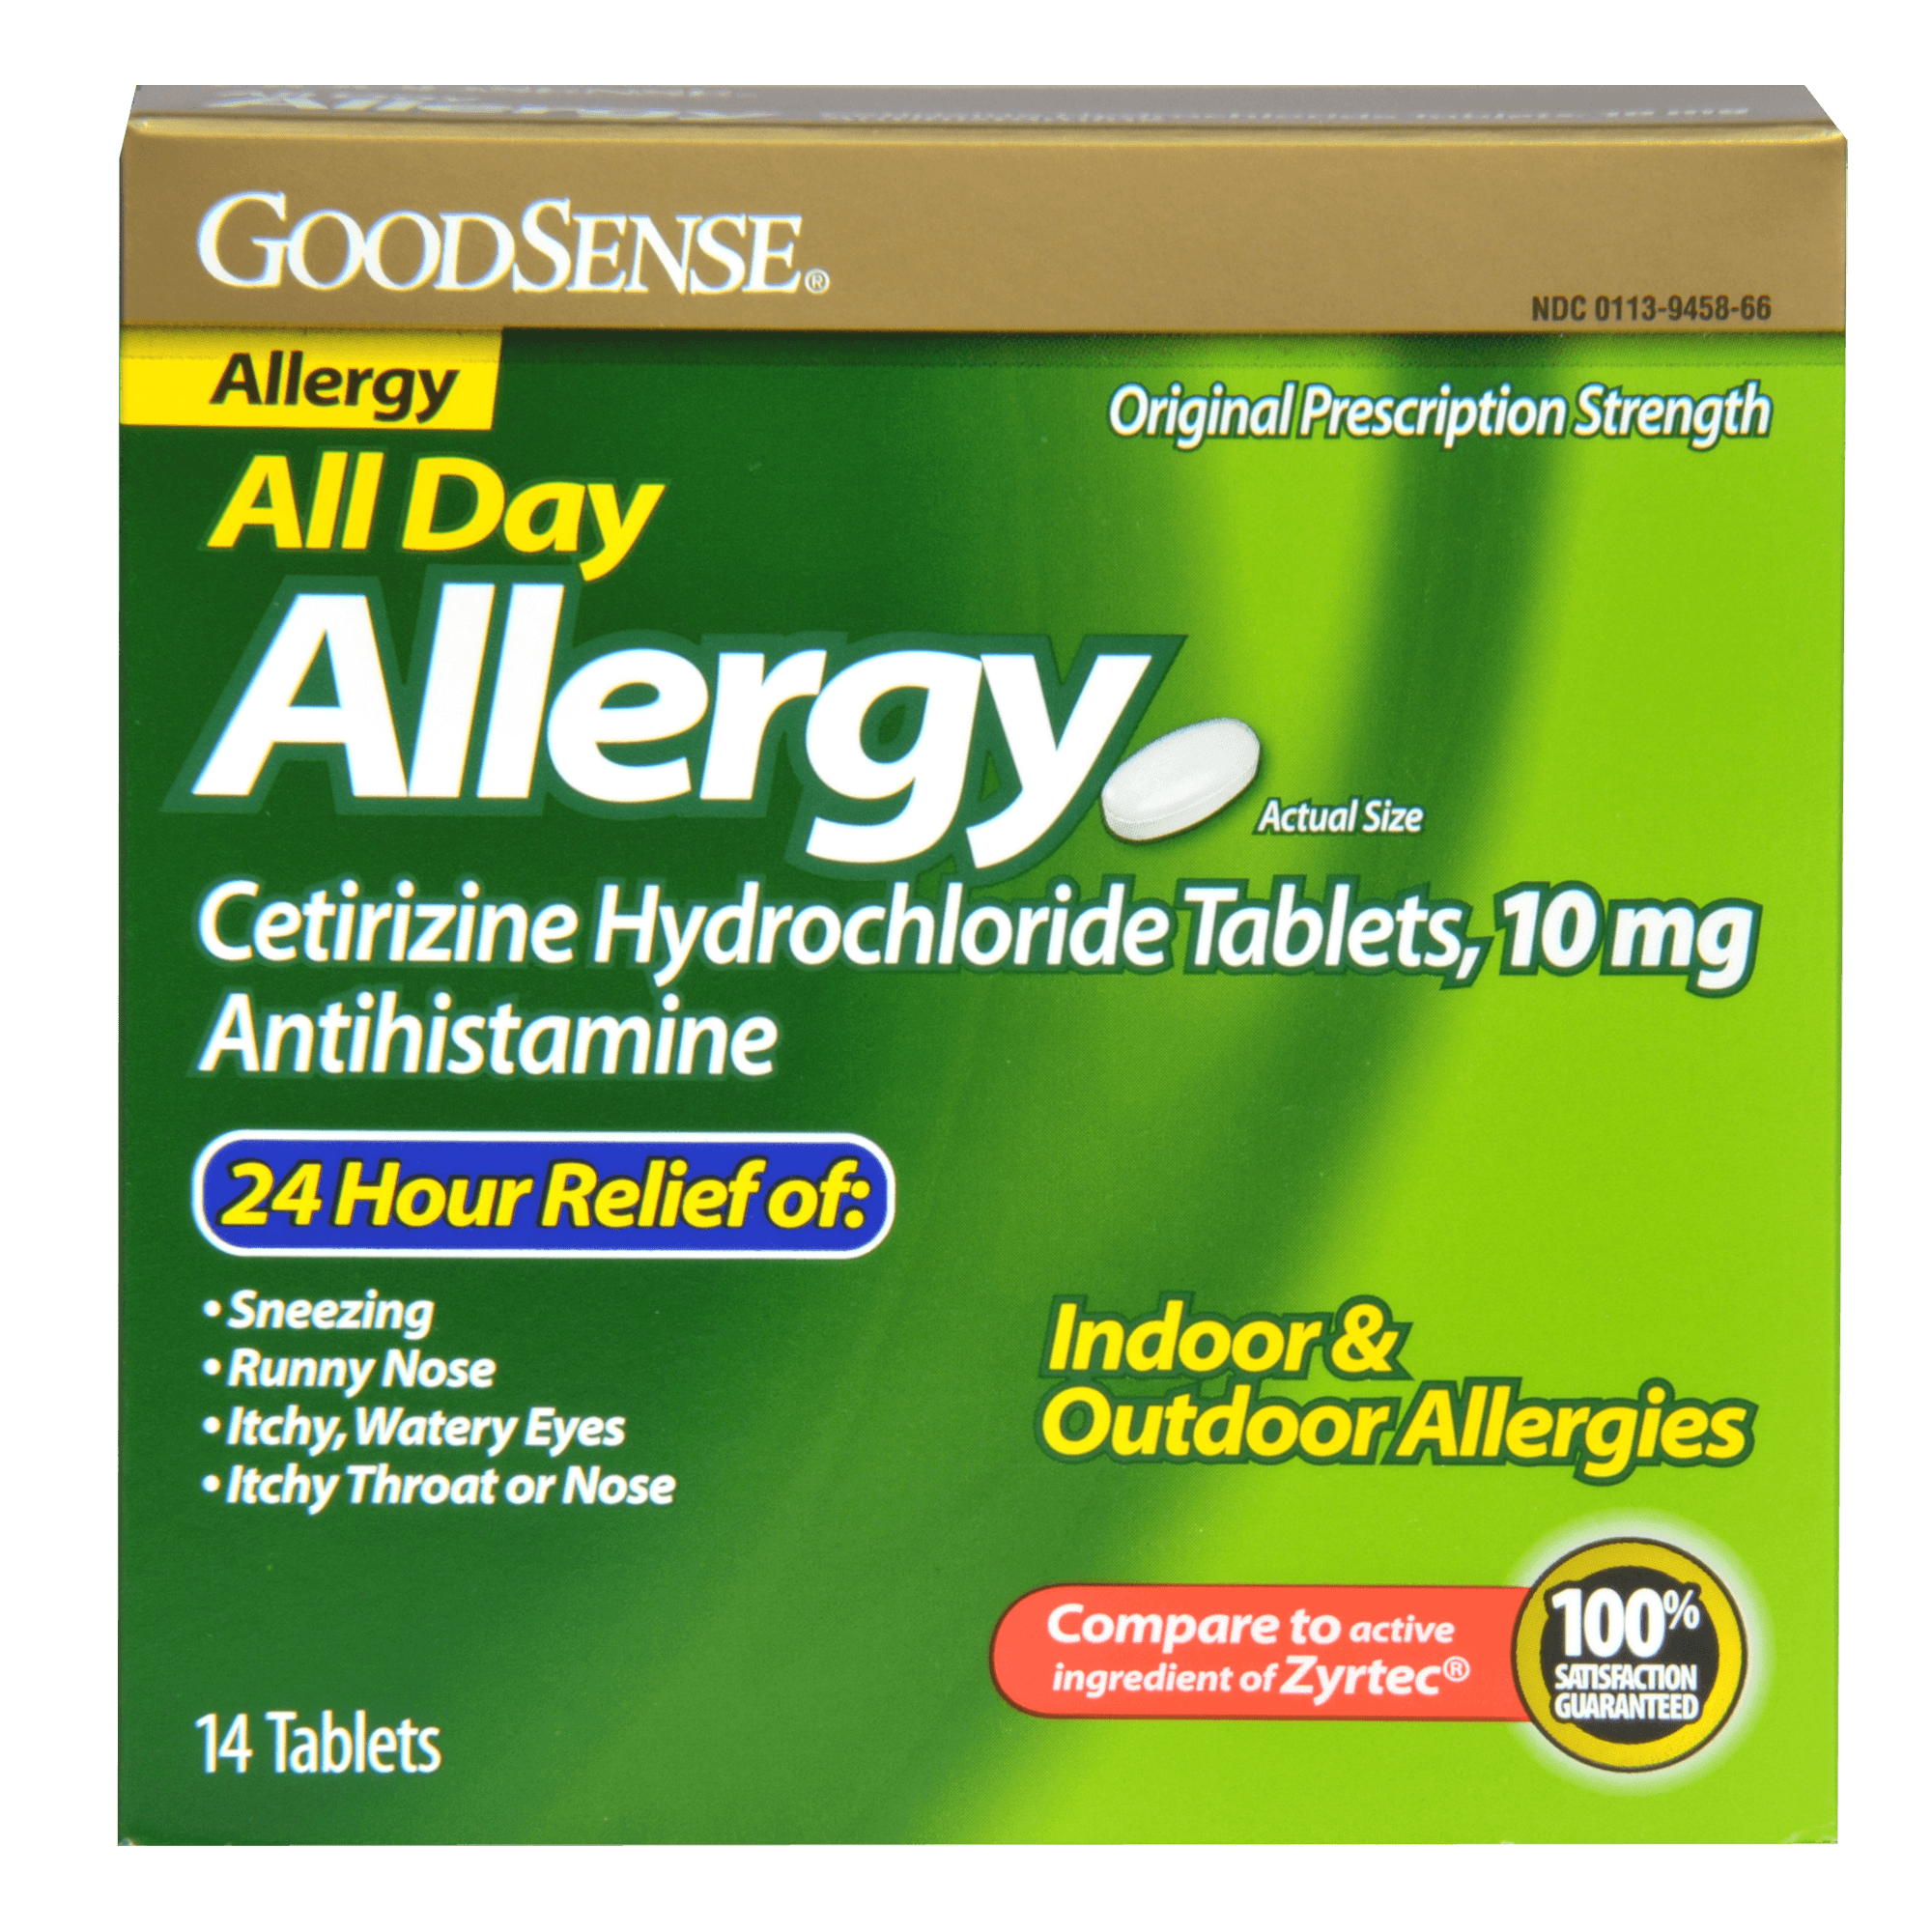 GoodSense All Day Allergy Cetirizine HCl Antihistamine Tablets, 10 mg, 14 Ct